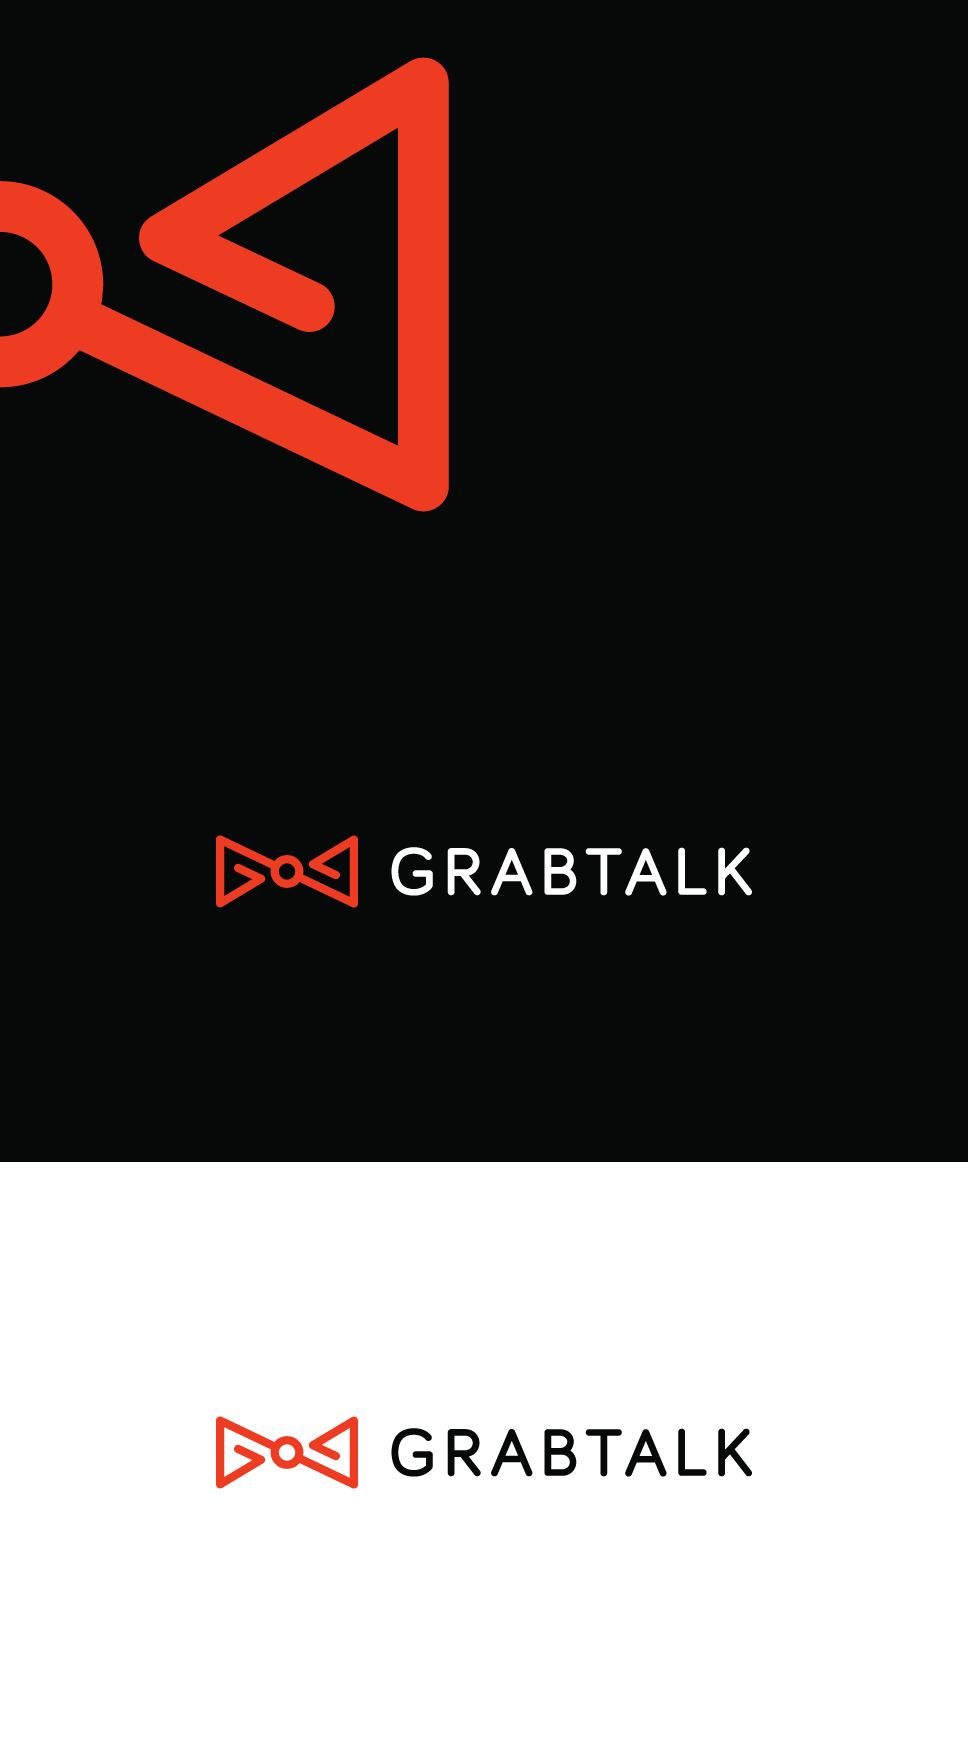 Flat, professional logo design for grabtalk. a bow tie logo, rounded typography. A line style bow tie standing for assistance, path, travel.  Interpreted as Servant, friend, concierge local guide logo